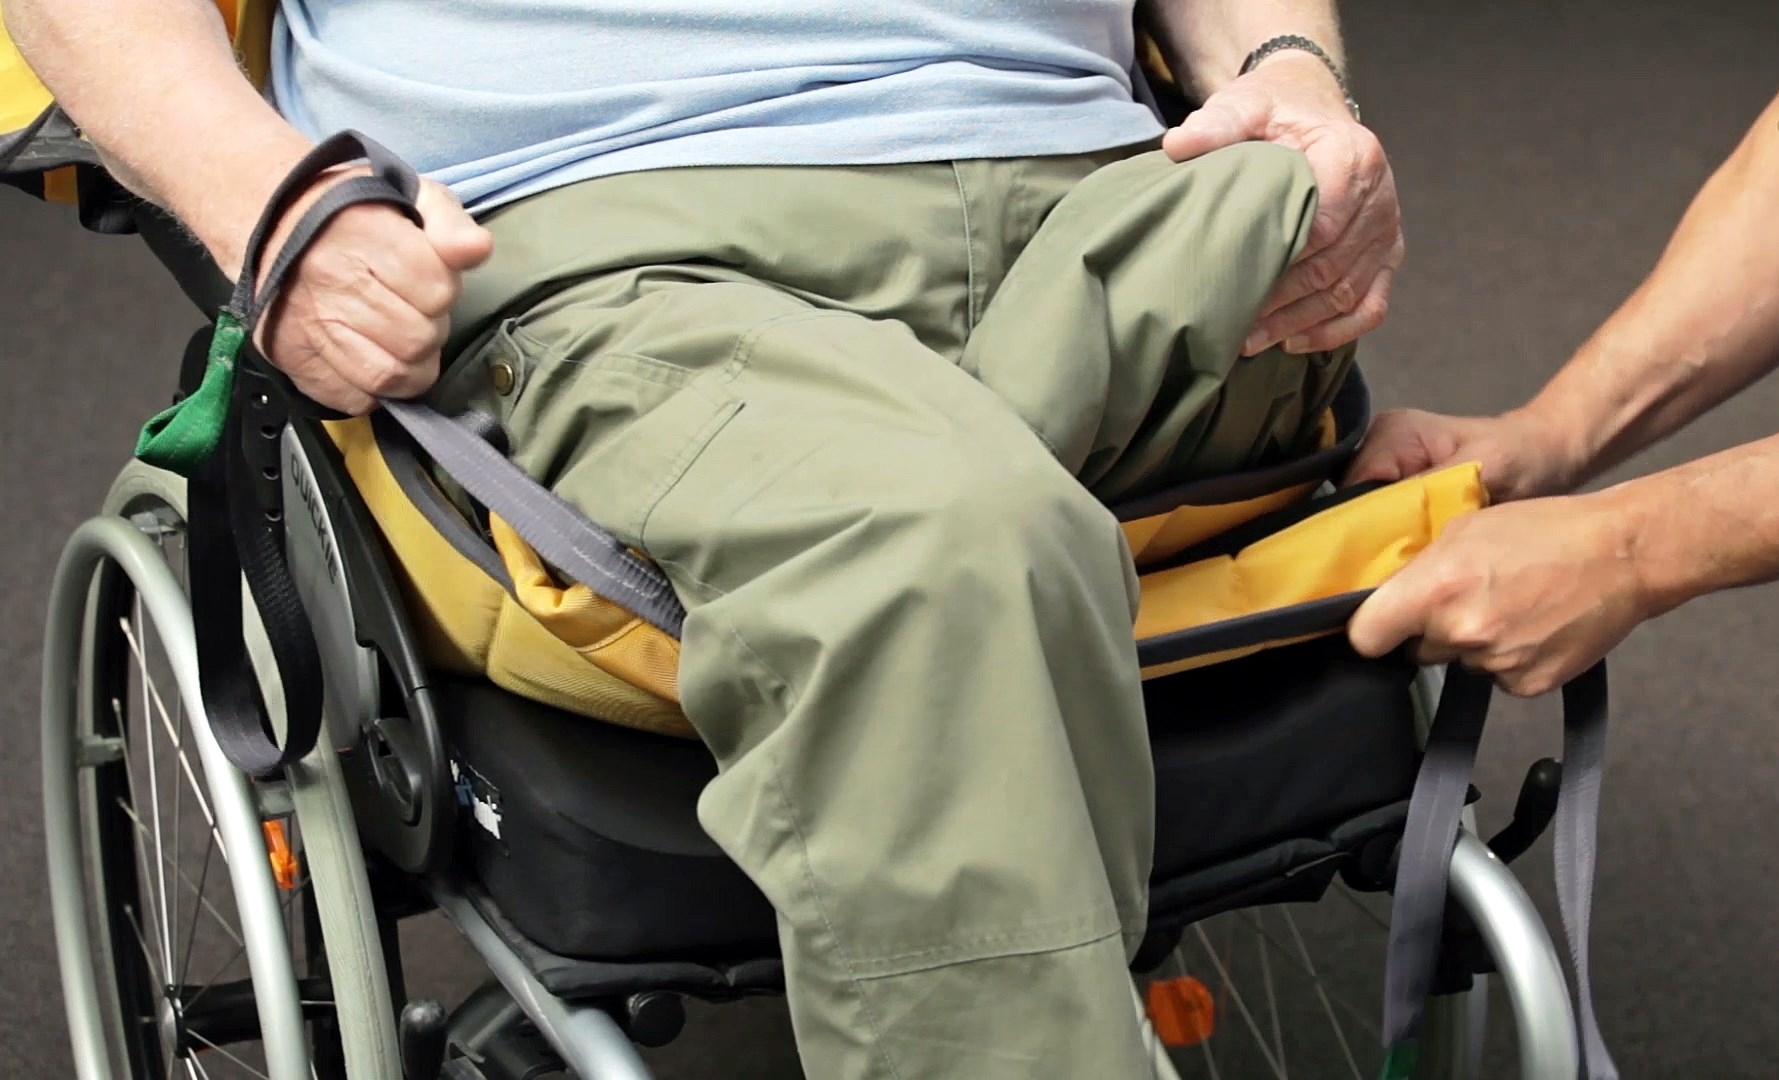 Custom Amputee - Sling on-off in wheelchair